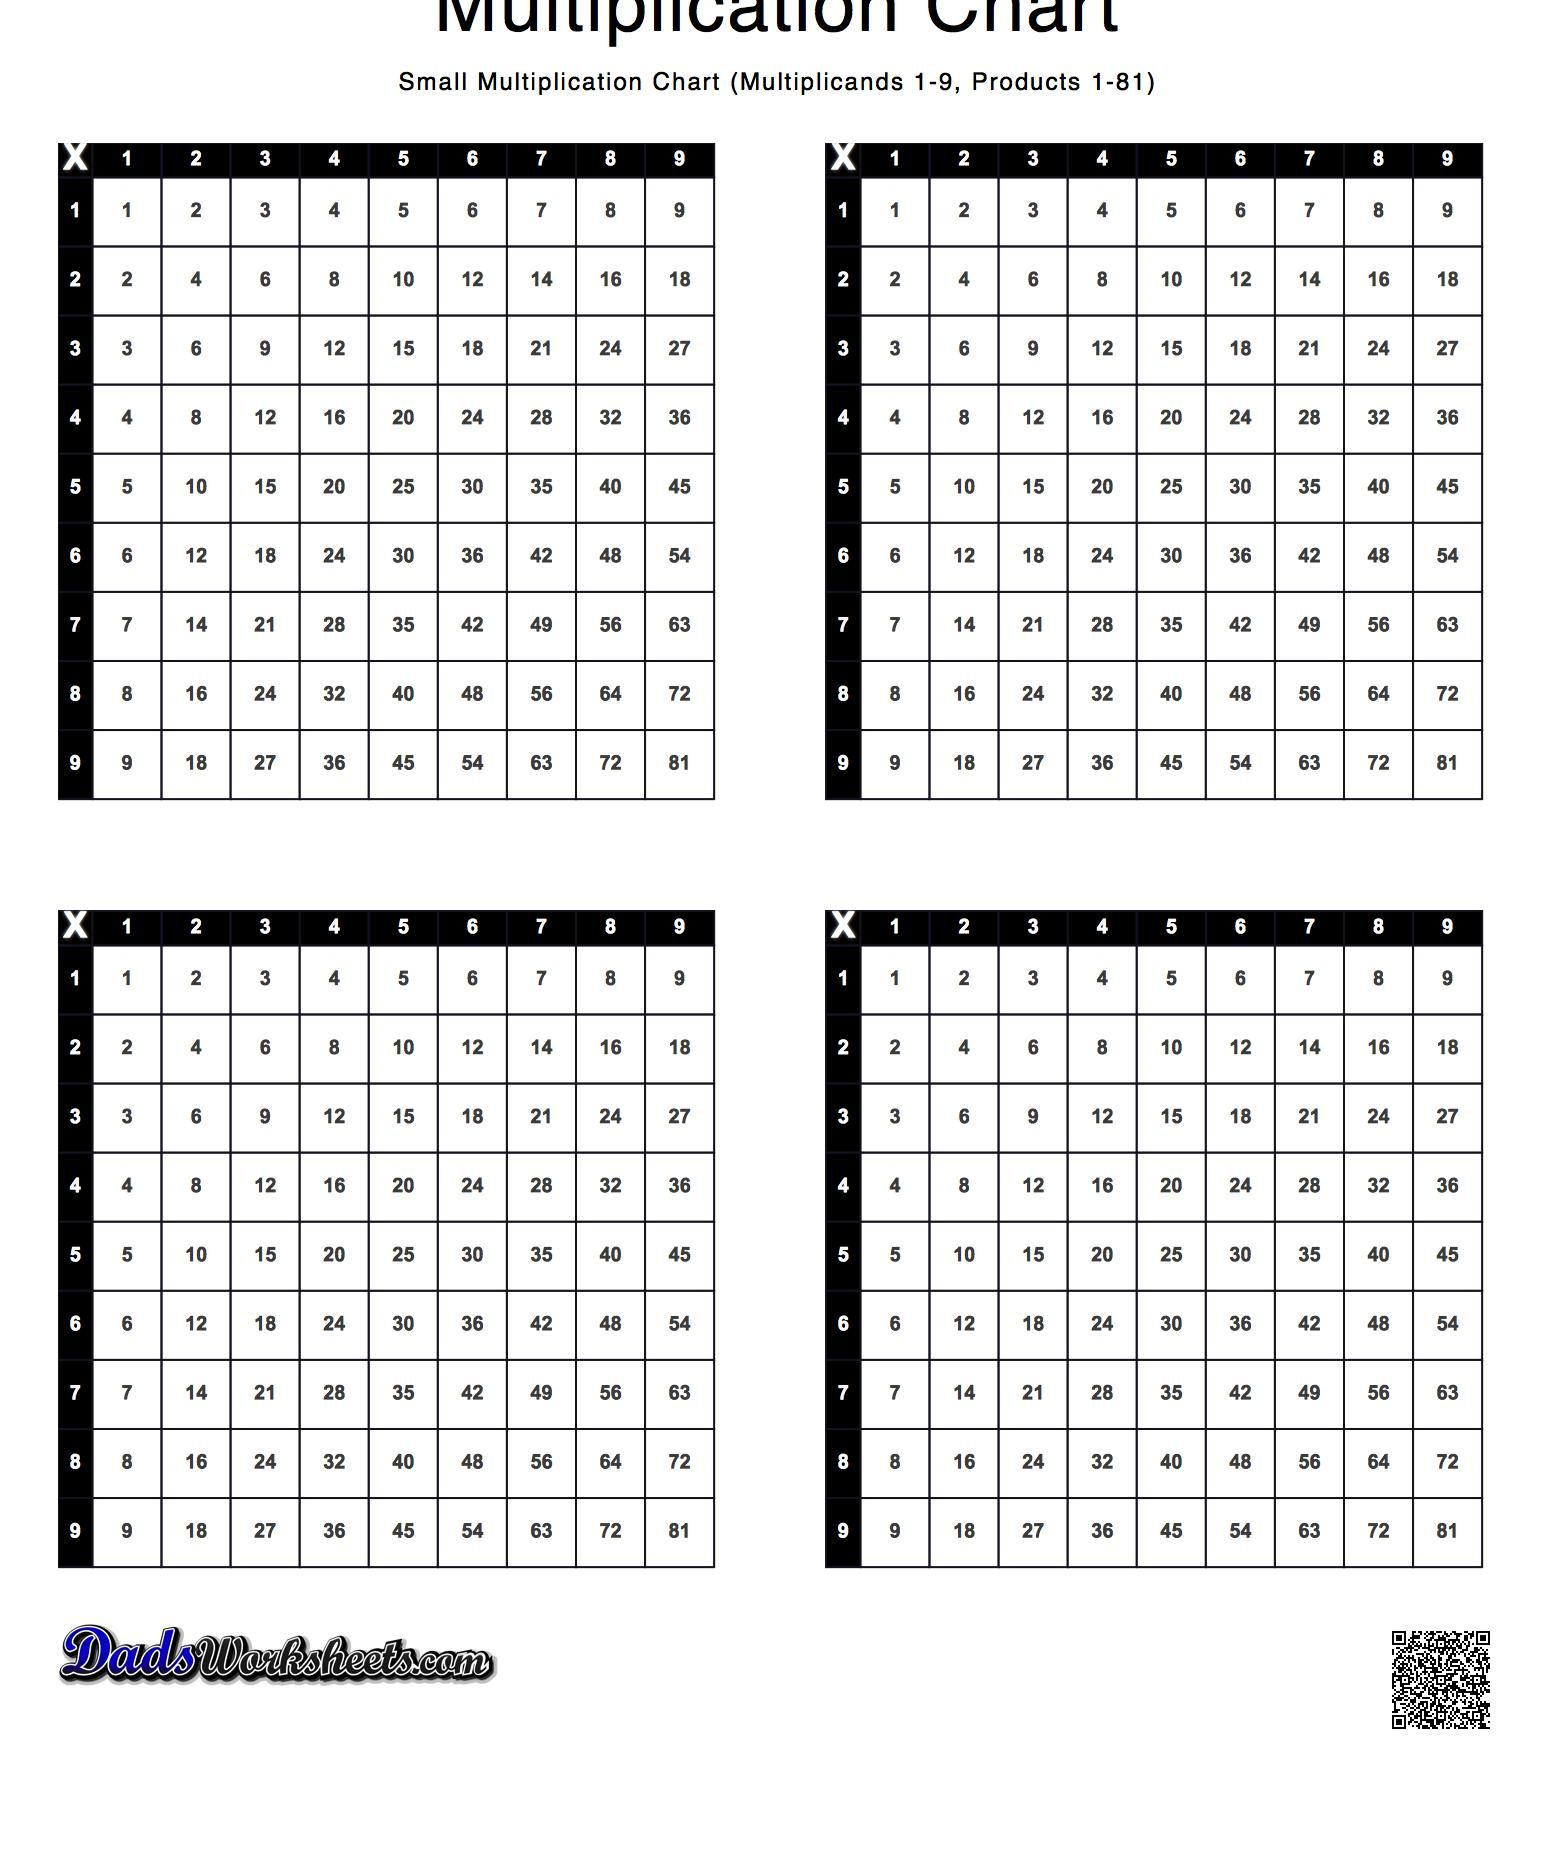 Multiplication chart small multiplication chart math multiplication chart small multiplication chart nvjuhfo Choice Image